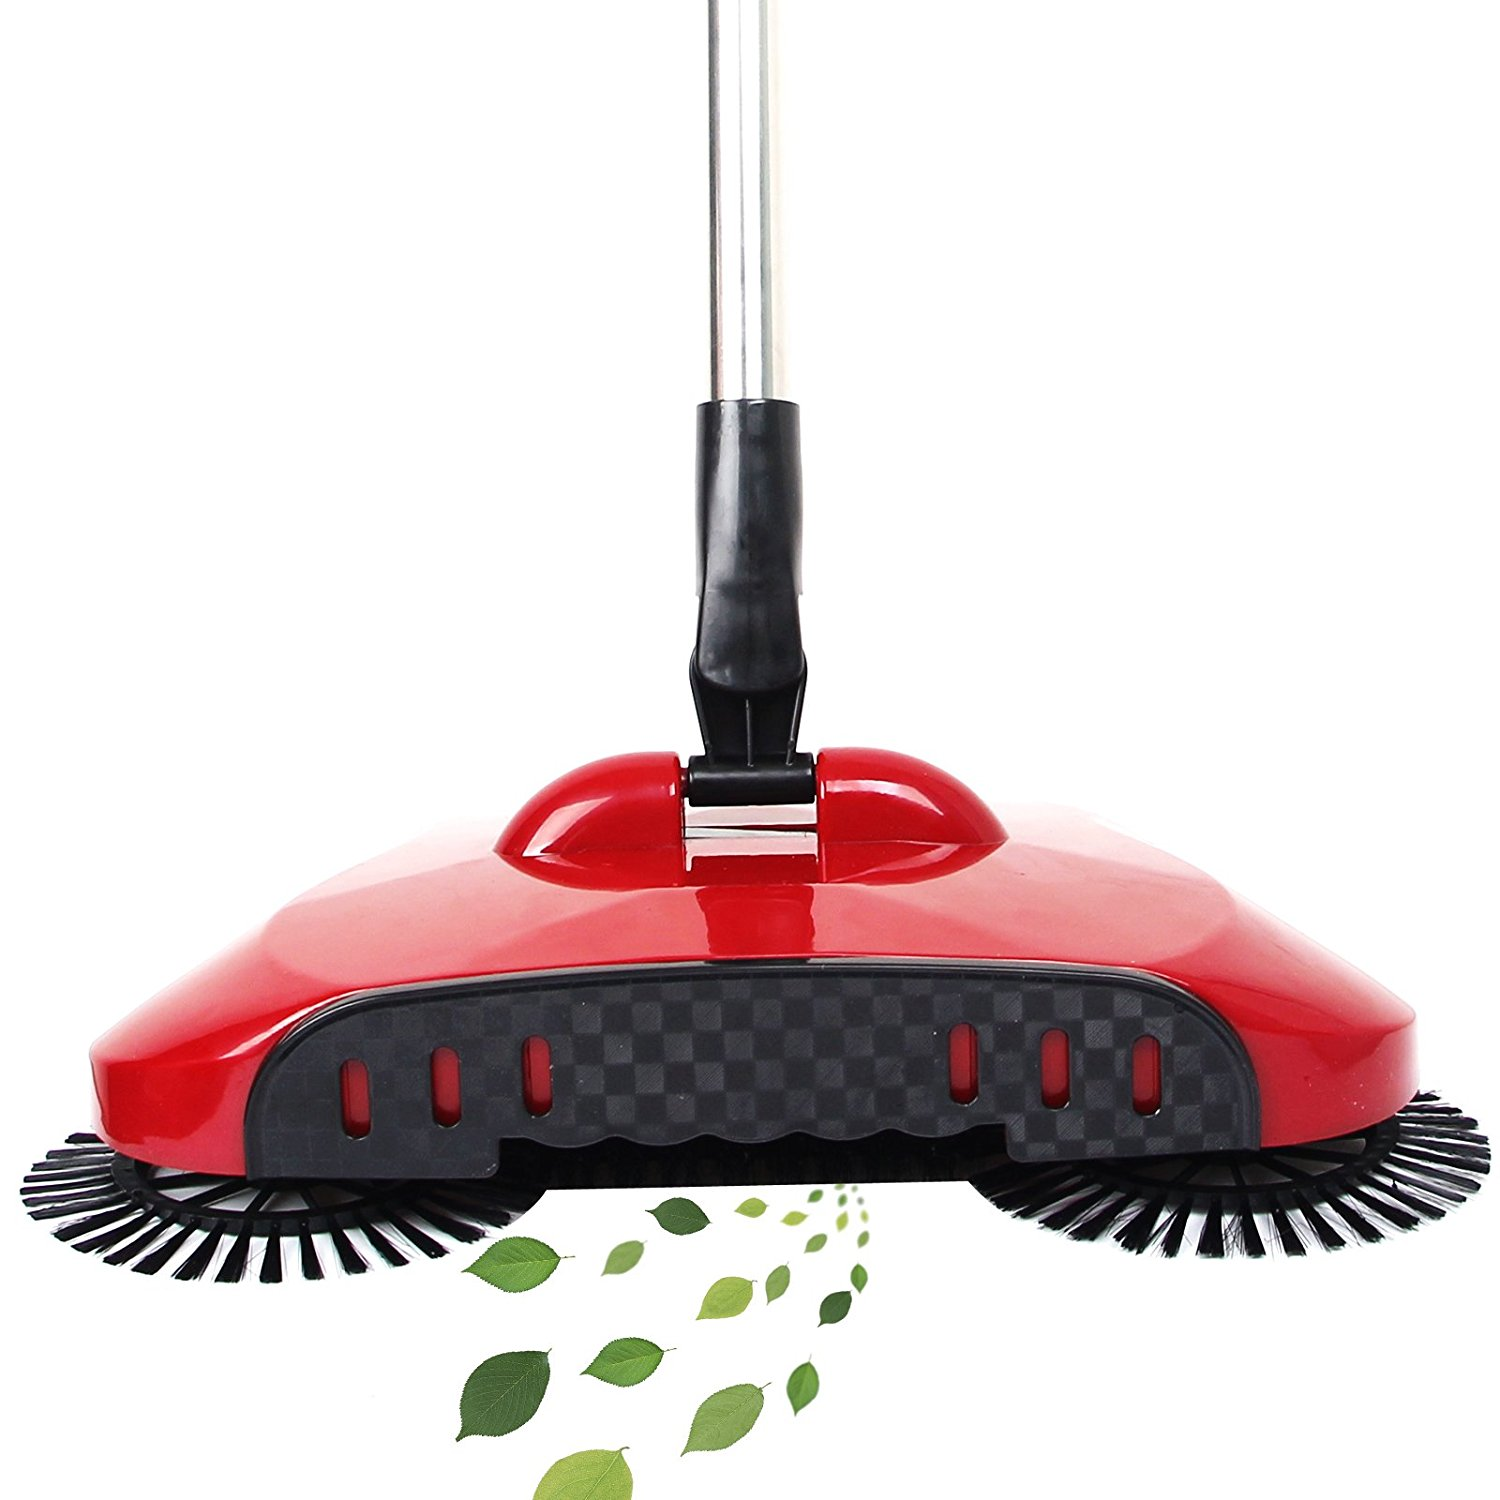 3 in 1 Household Automatic Hand Push Sweeper Broom 360 Degree Rotating Cleaning Machine Sweeping Tool Without Electricity Dustpan Trash Bin (Red)